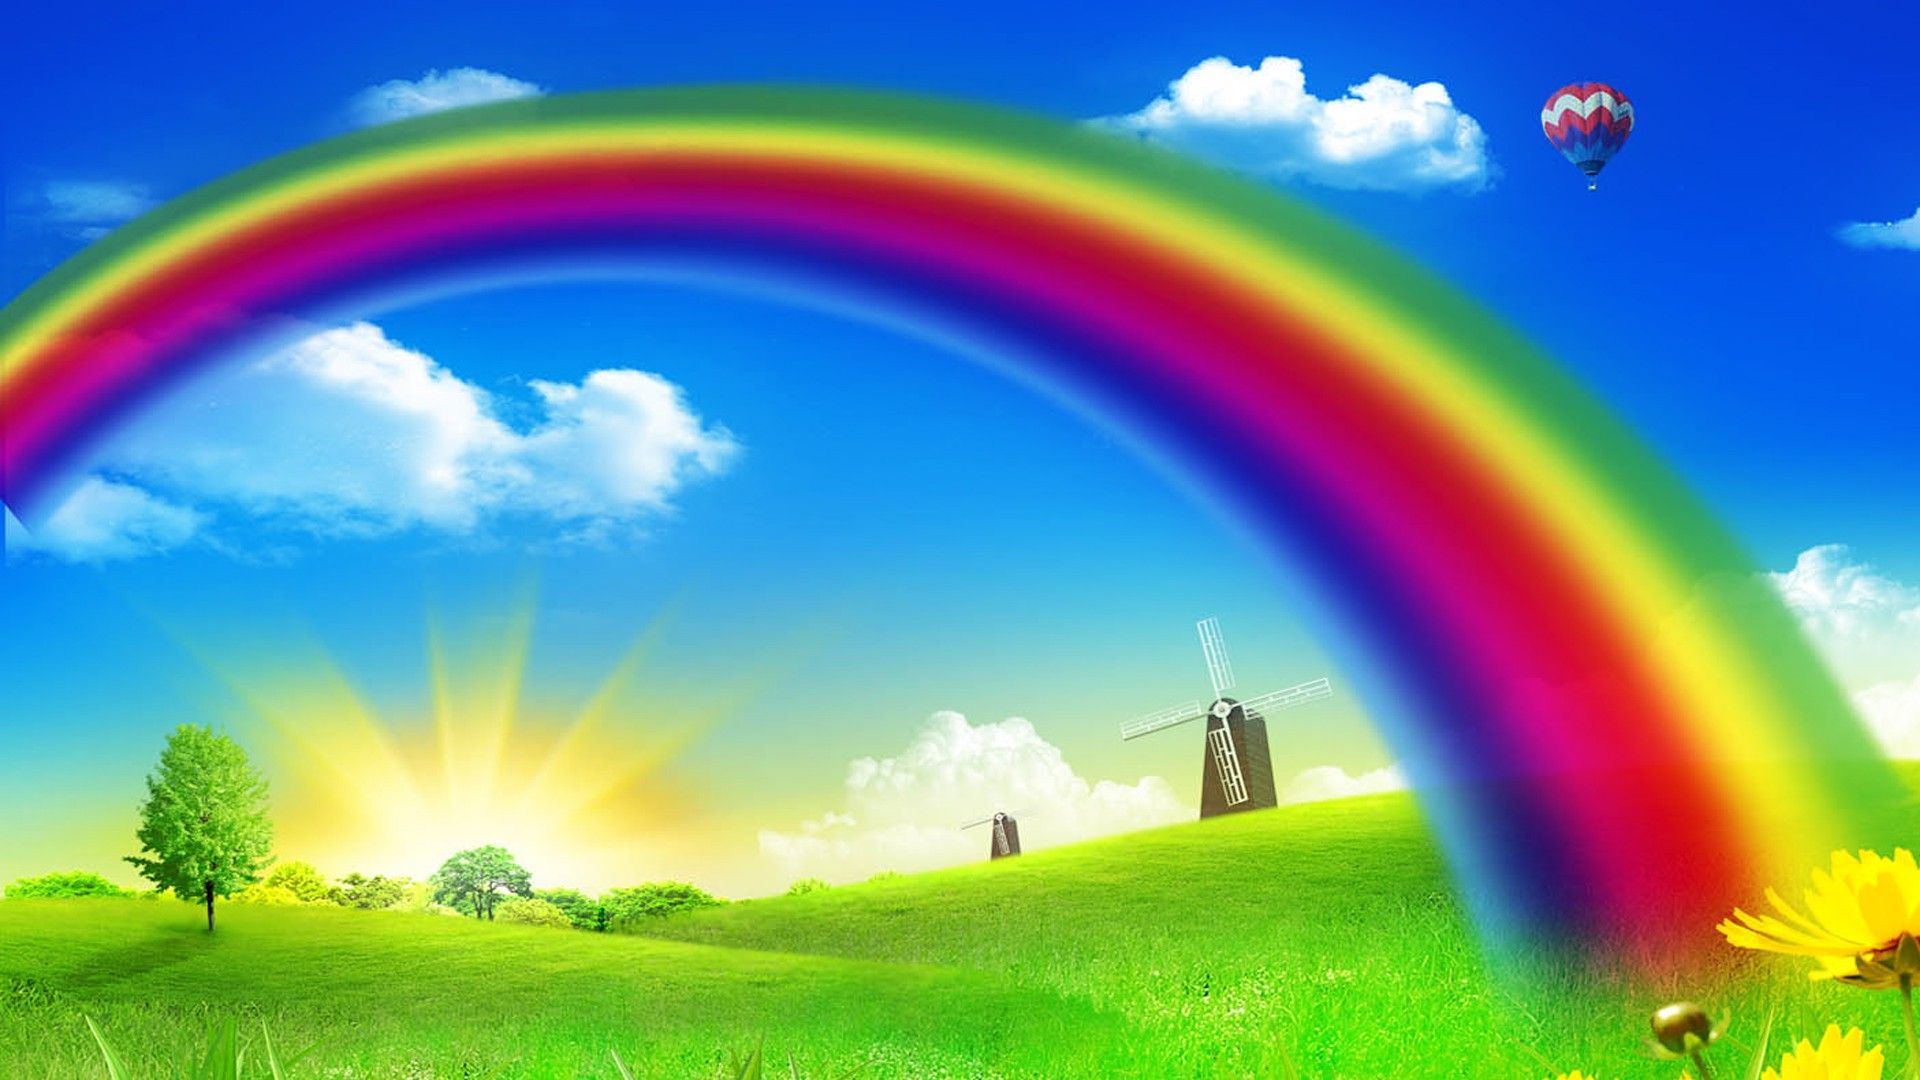 Abstract Rainbow Wallpapers Hd With Images Rainbow Wallpaper